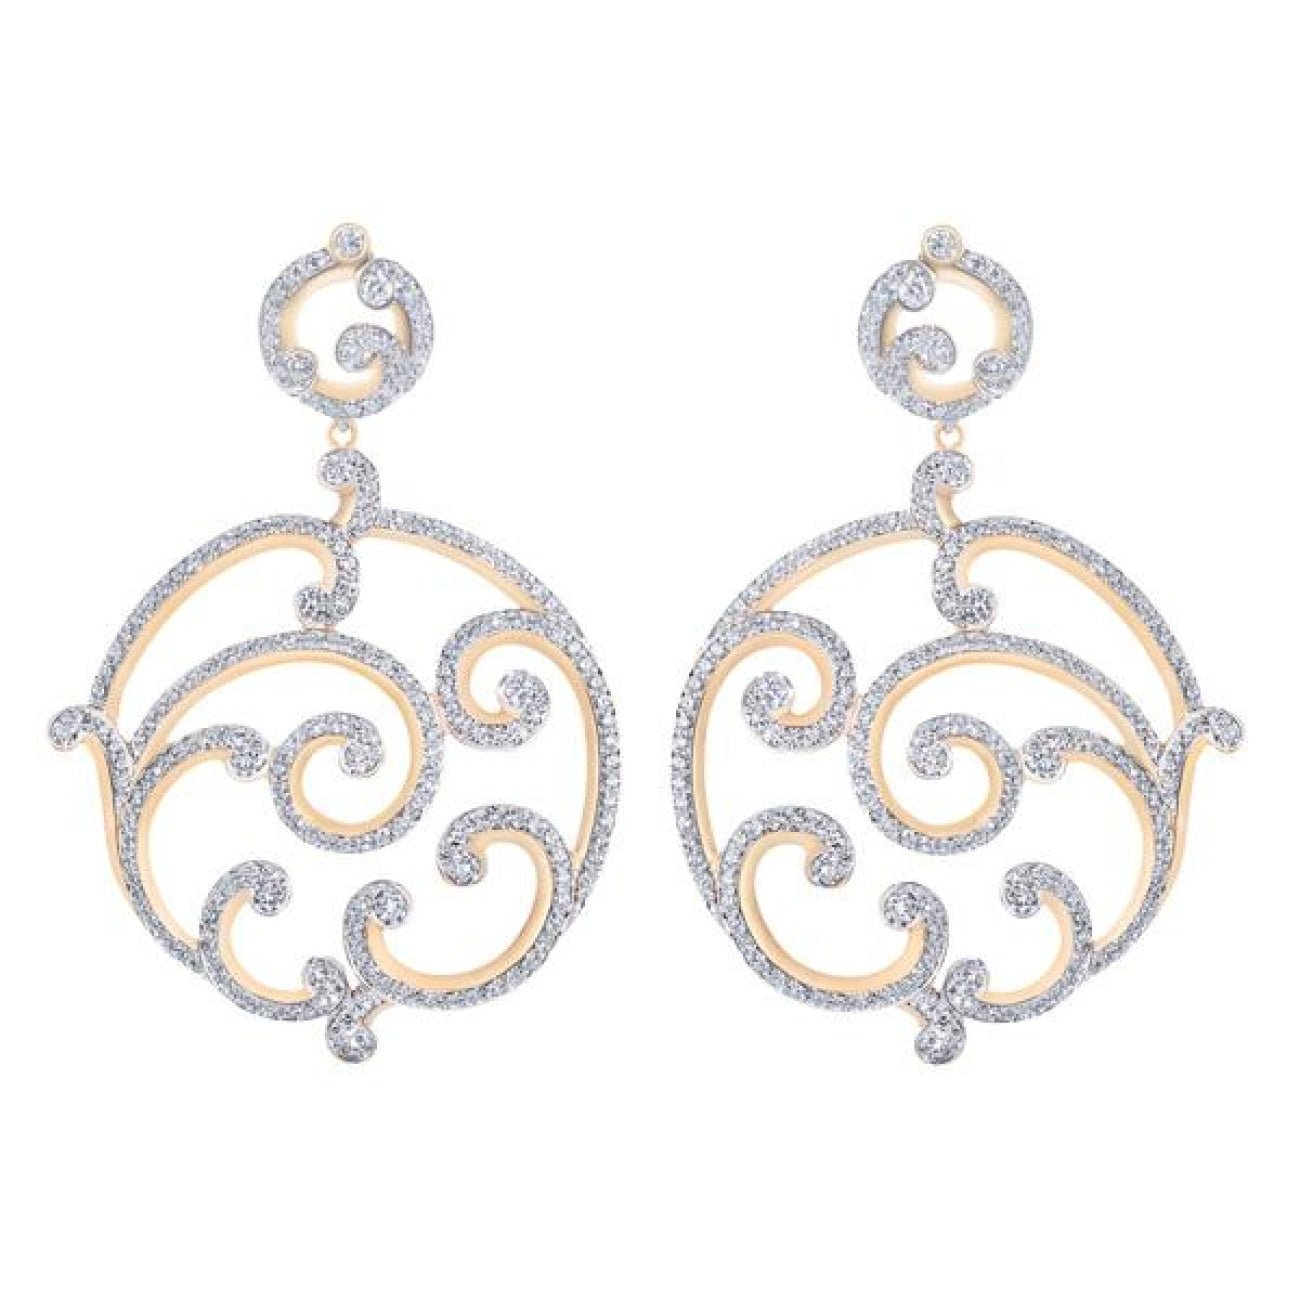 Fabergé Jewelry - Rococo Pavé Diamond Rose Gold Grand Earrings | Manfredi Jewels